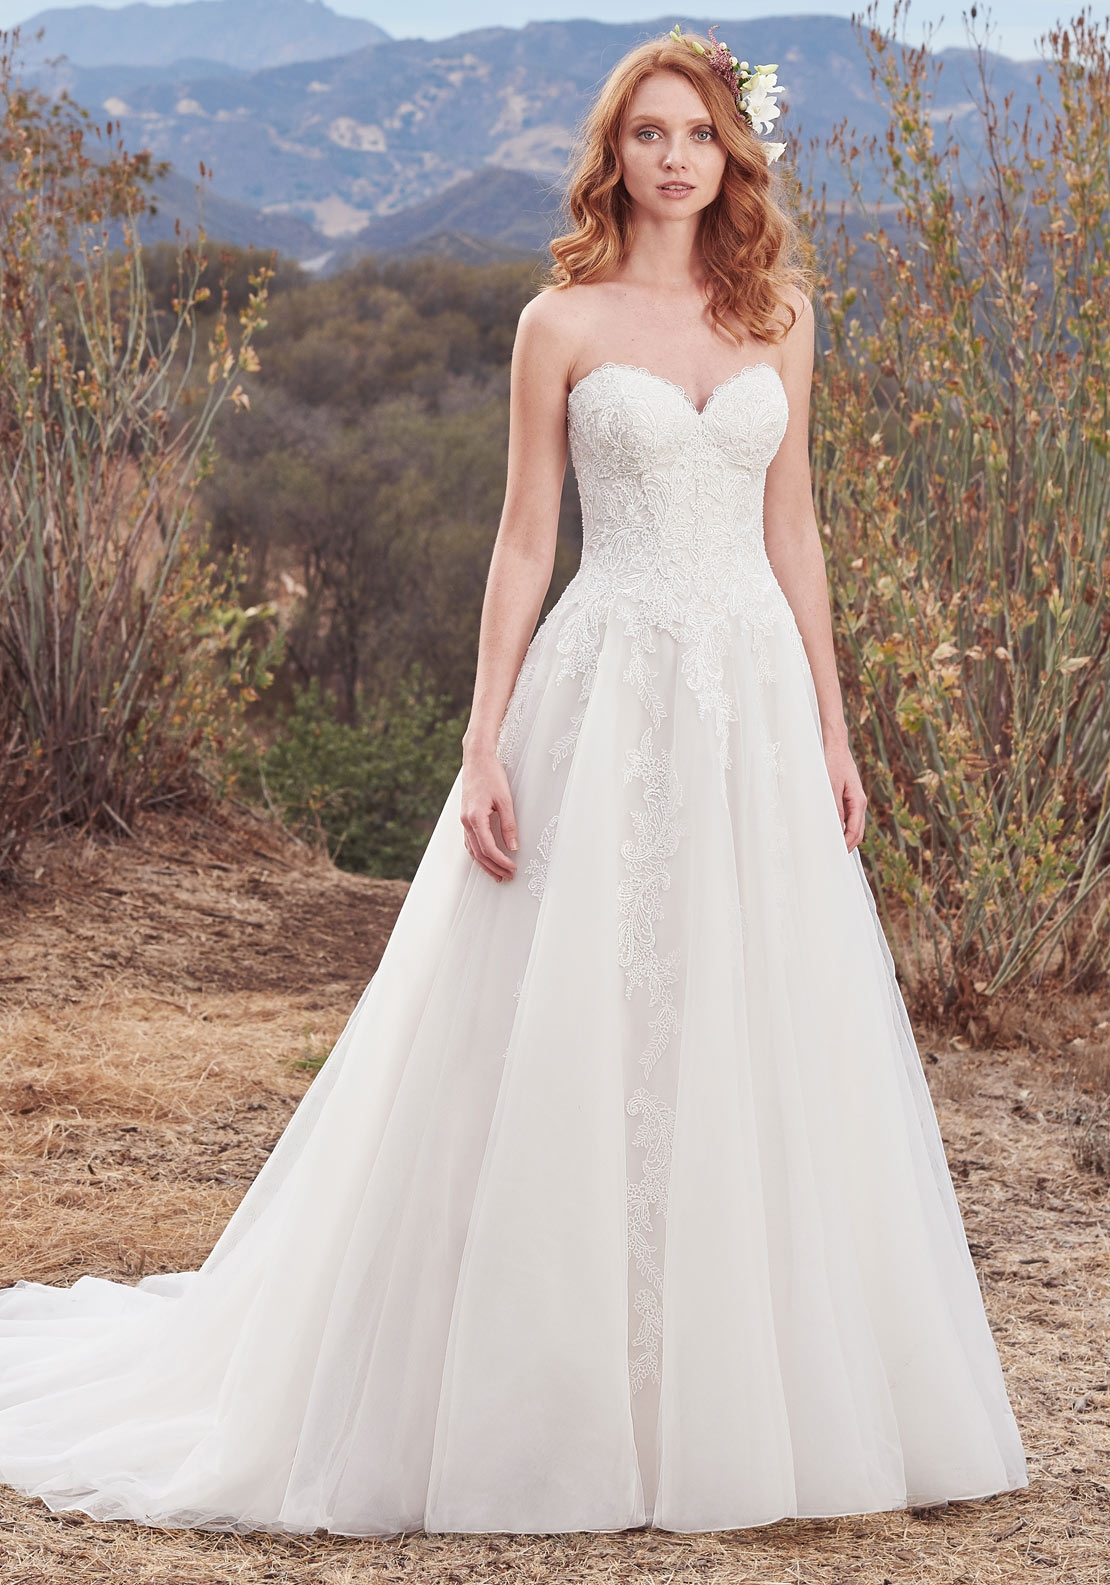 Maggie Sottero Lorelai Wedding Dress, Ivory